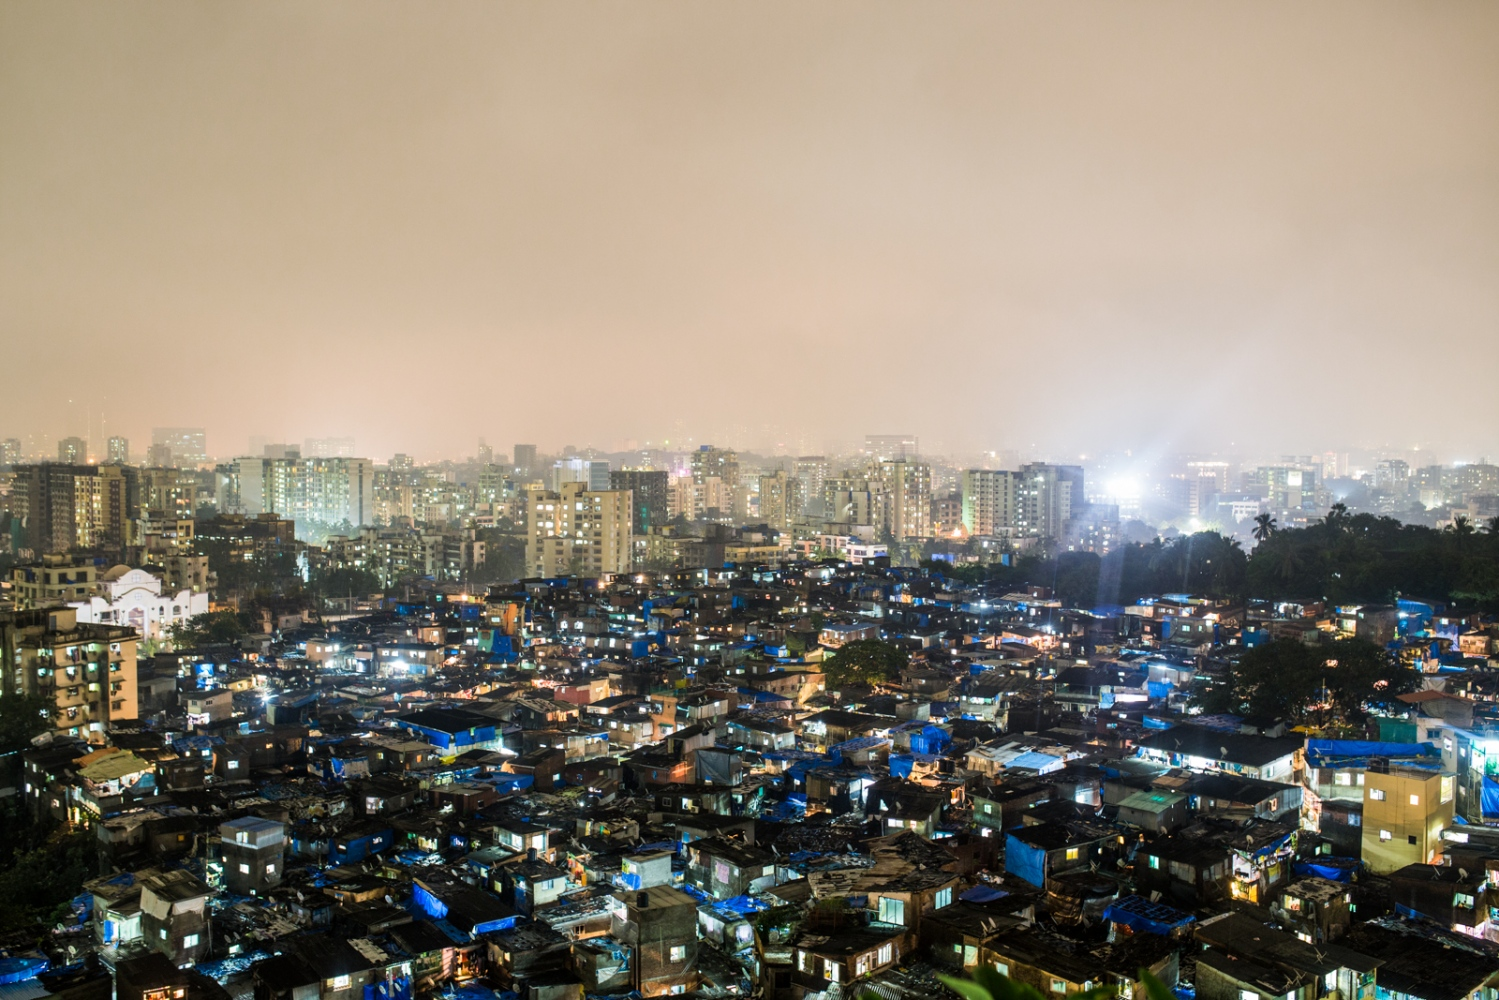 Slums of Mumbai, India. Energy puts on an incredible show at night and reminds you that millions of people are alive, surviving, and going through the daily grind. So much of our energy is sourced from fossil fuels that are responsible for vast amounts of air pollution and CO2 emissions that cause climate change. However, fossil fuels have been and still are responsible for the development of billions of people worldwide. There is no other source of concentrated energy that is so cheap, accessible, and transportable. This is why it is so important that global leaders take into consideration multiple solutions and adaptations to wean our society off our fossil fuel addiction. If people are to be lifted out of poverty, alternative energy sources need to be just as cheap and accessible. Subsidies play a large part in this game, and there is a dire need to shift subsidies away from fossil fuels to clean energy sources. Energy is a central factor to the betterment of people's lives. Without it nothing is possible.